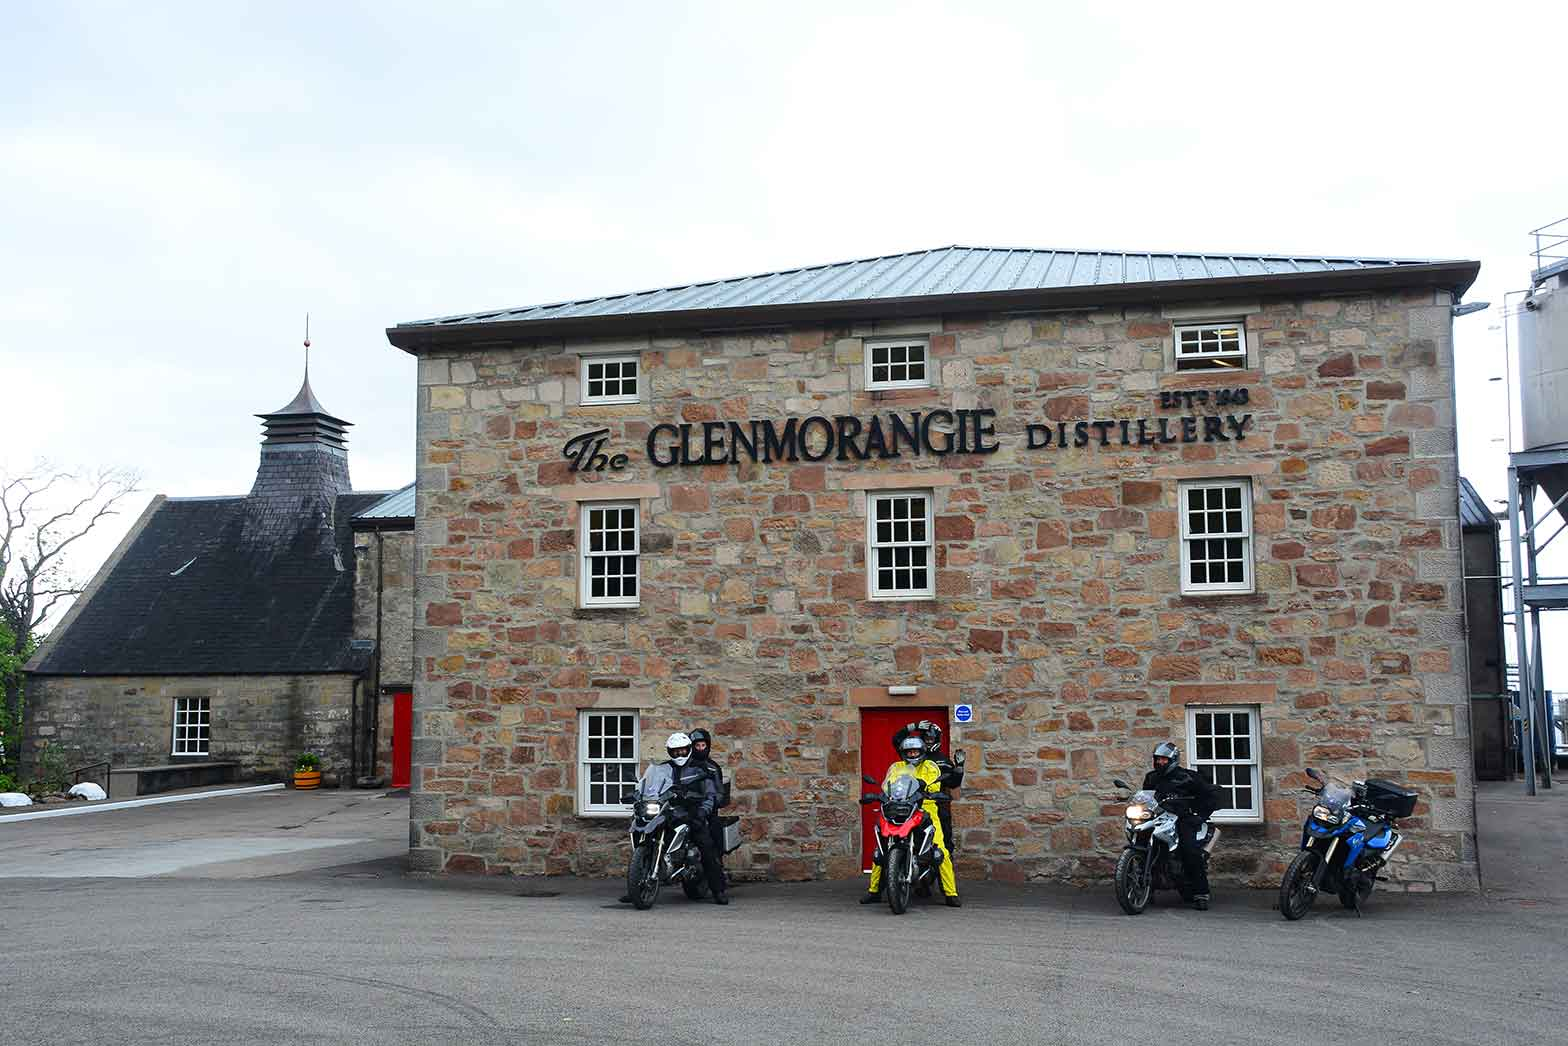 The Glenmorangie whisky distillery, Scotland